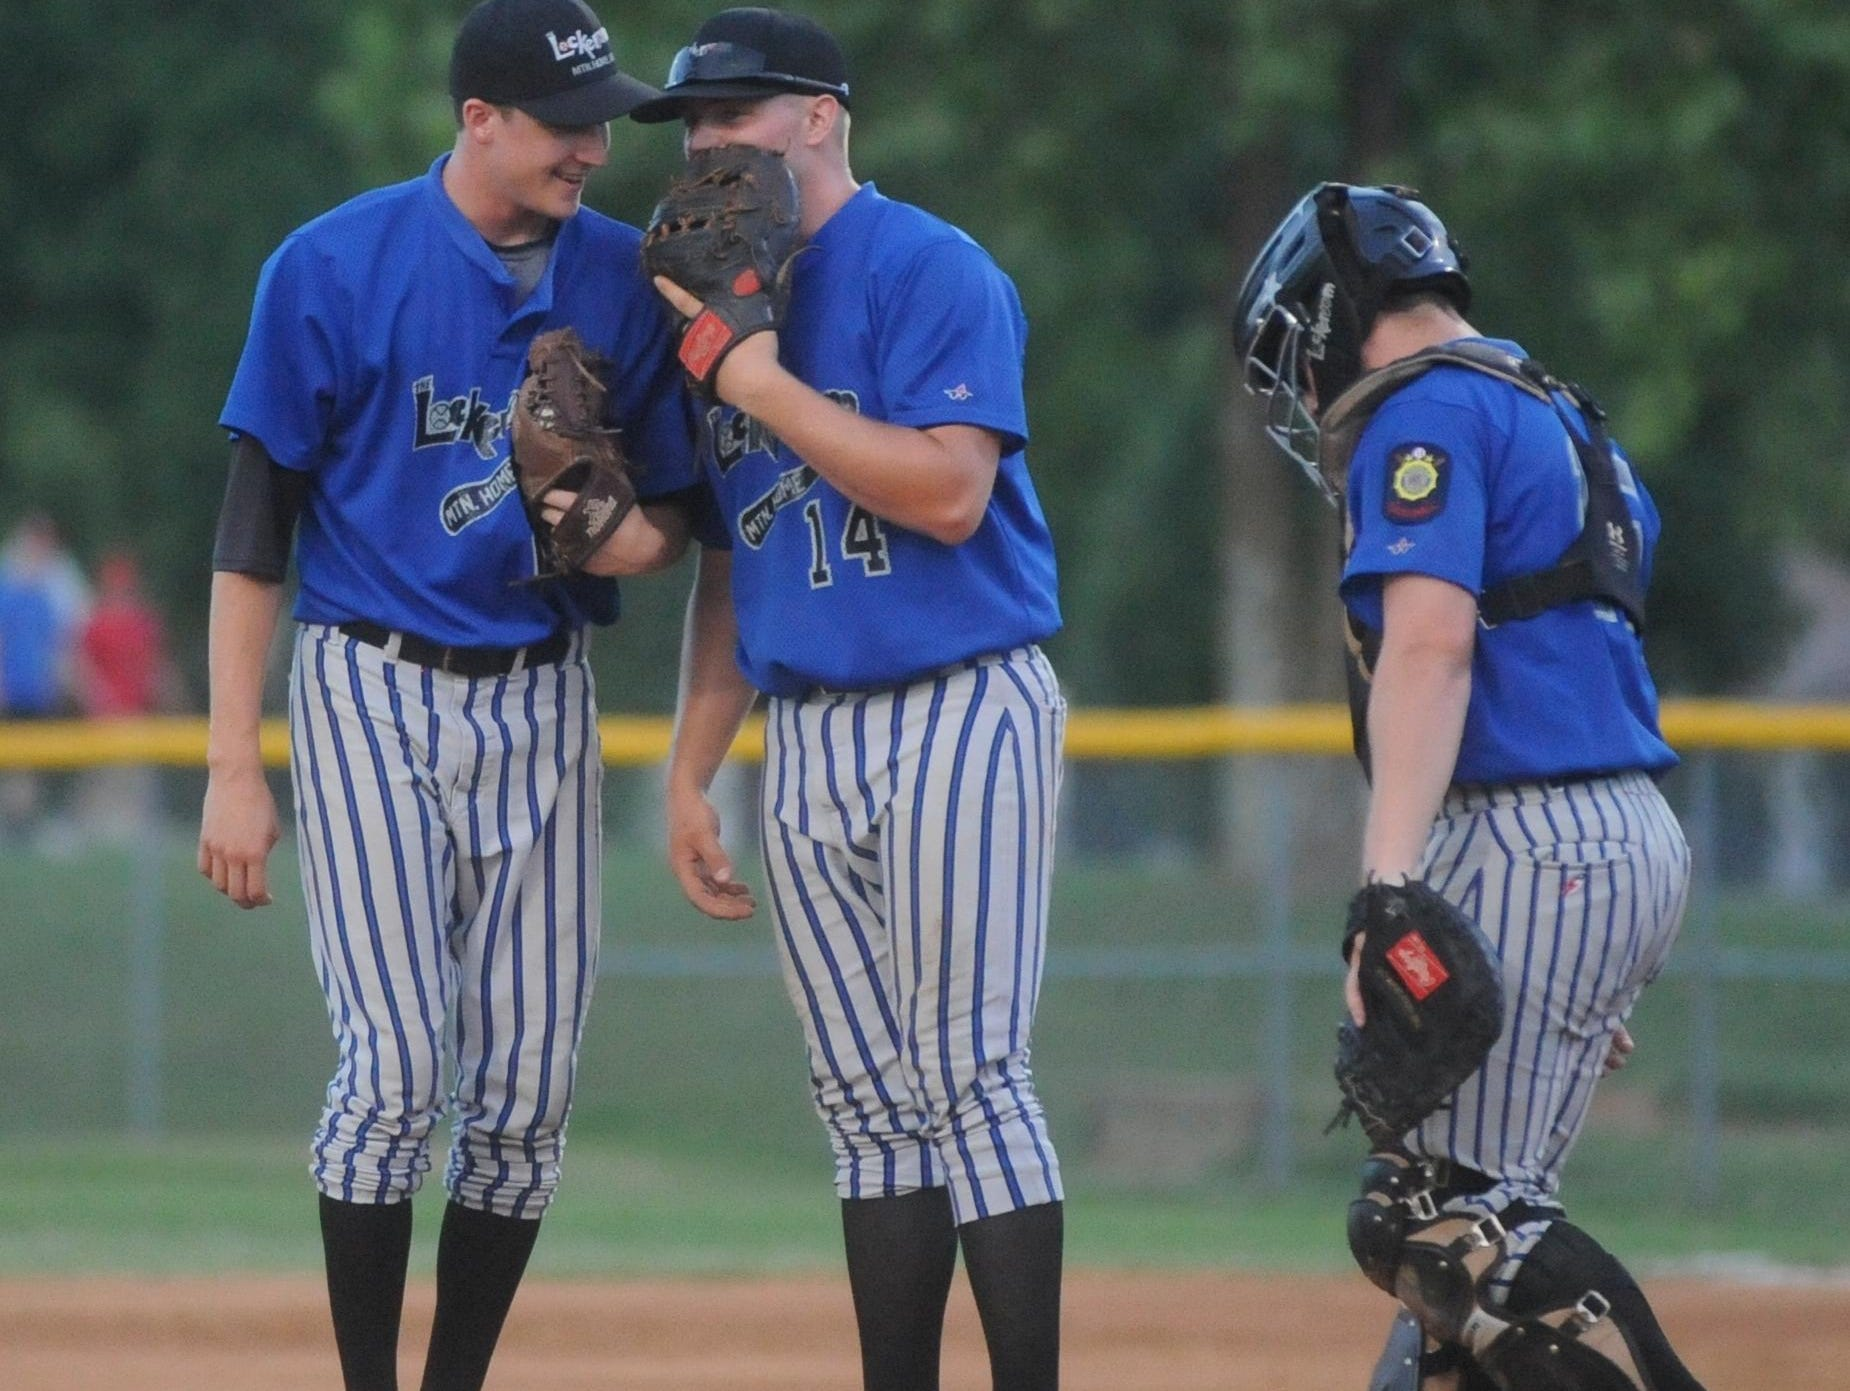 From left, Lockeroom players Ryan Czanstkowski, Cole Anderson and Brody Ninemire meet on the mound during a recent Twin Lakes Classic game at Cooper Park.